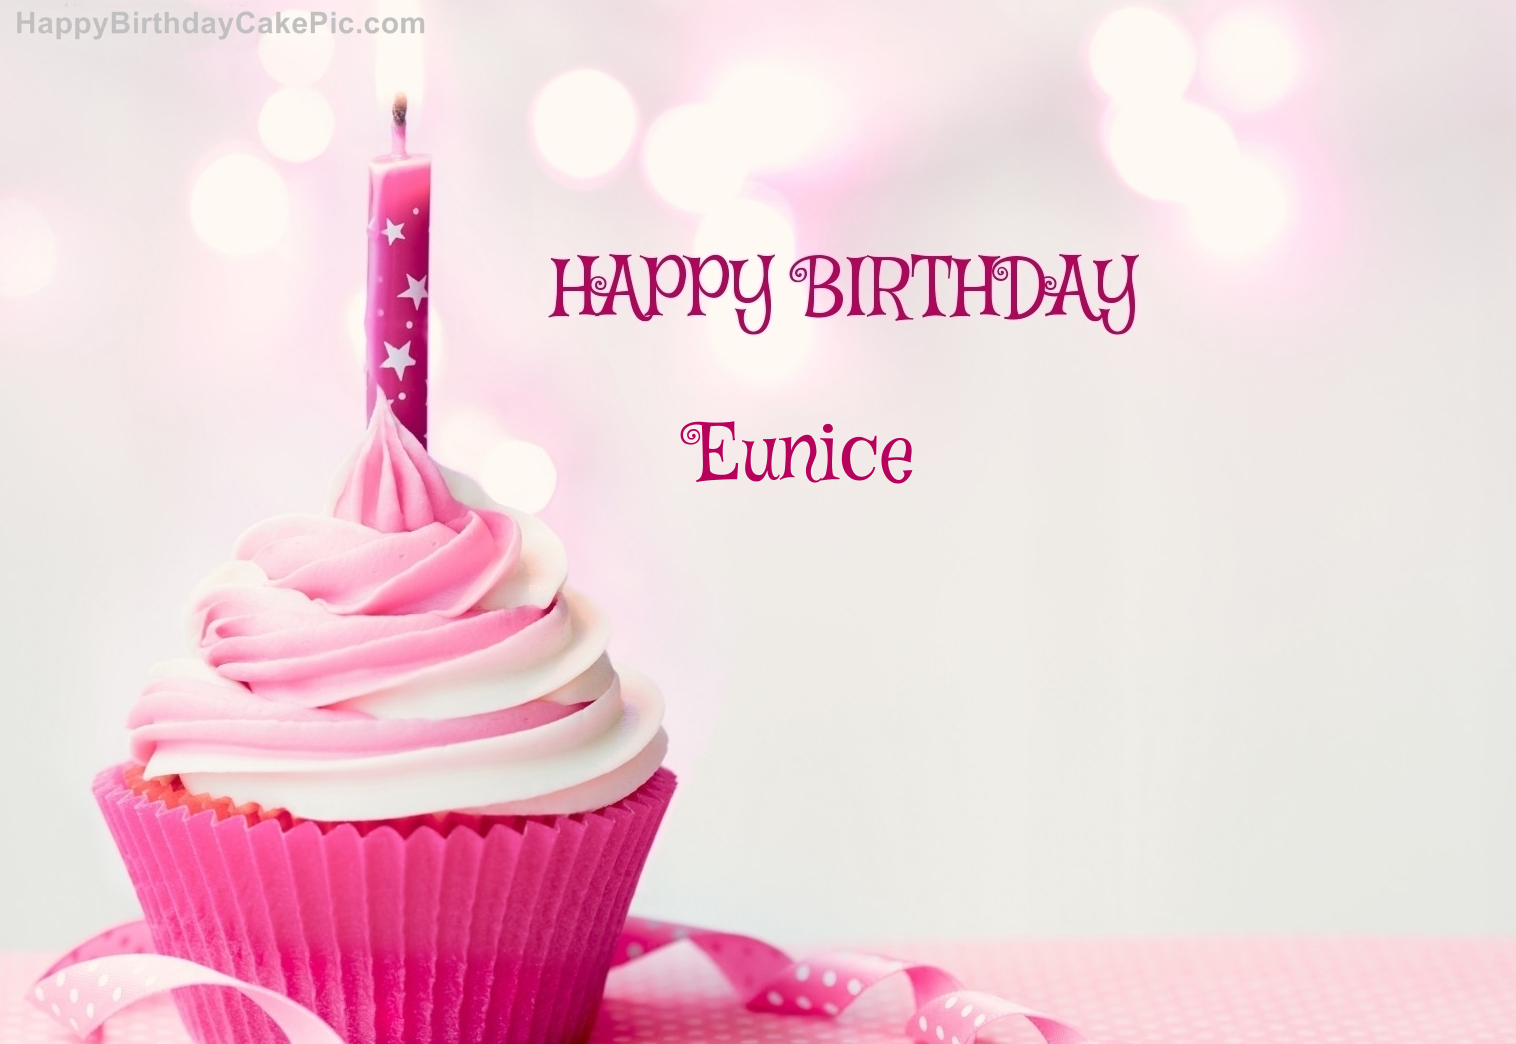 Happy Birthday Wishes In Xhosa ~ Happy birthday cupcake candle pink cake for eunice